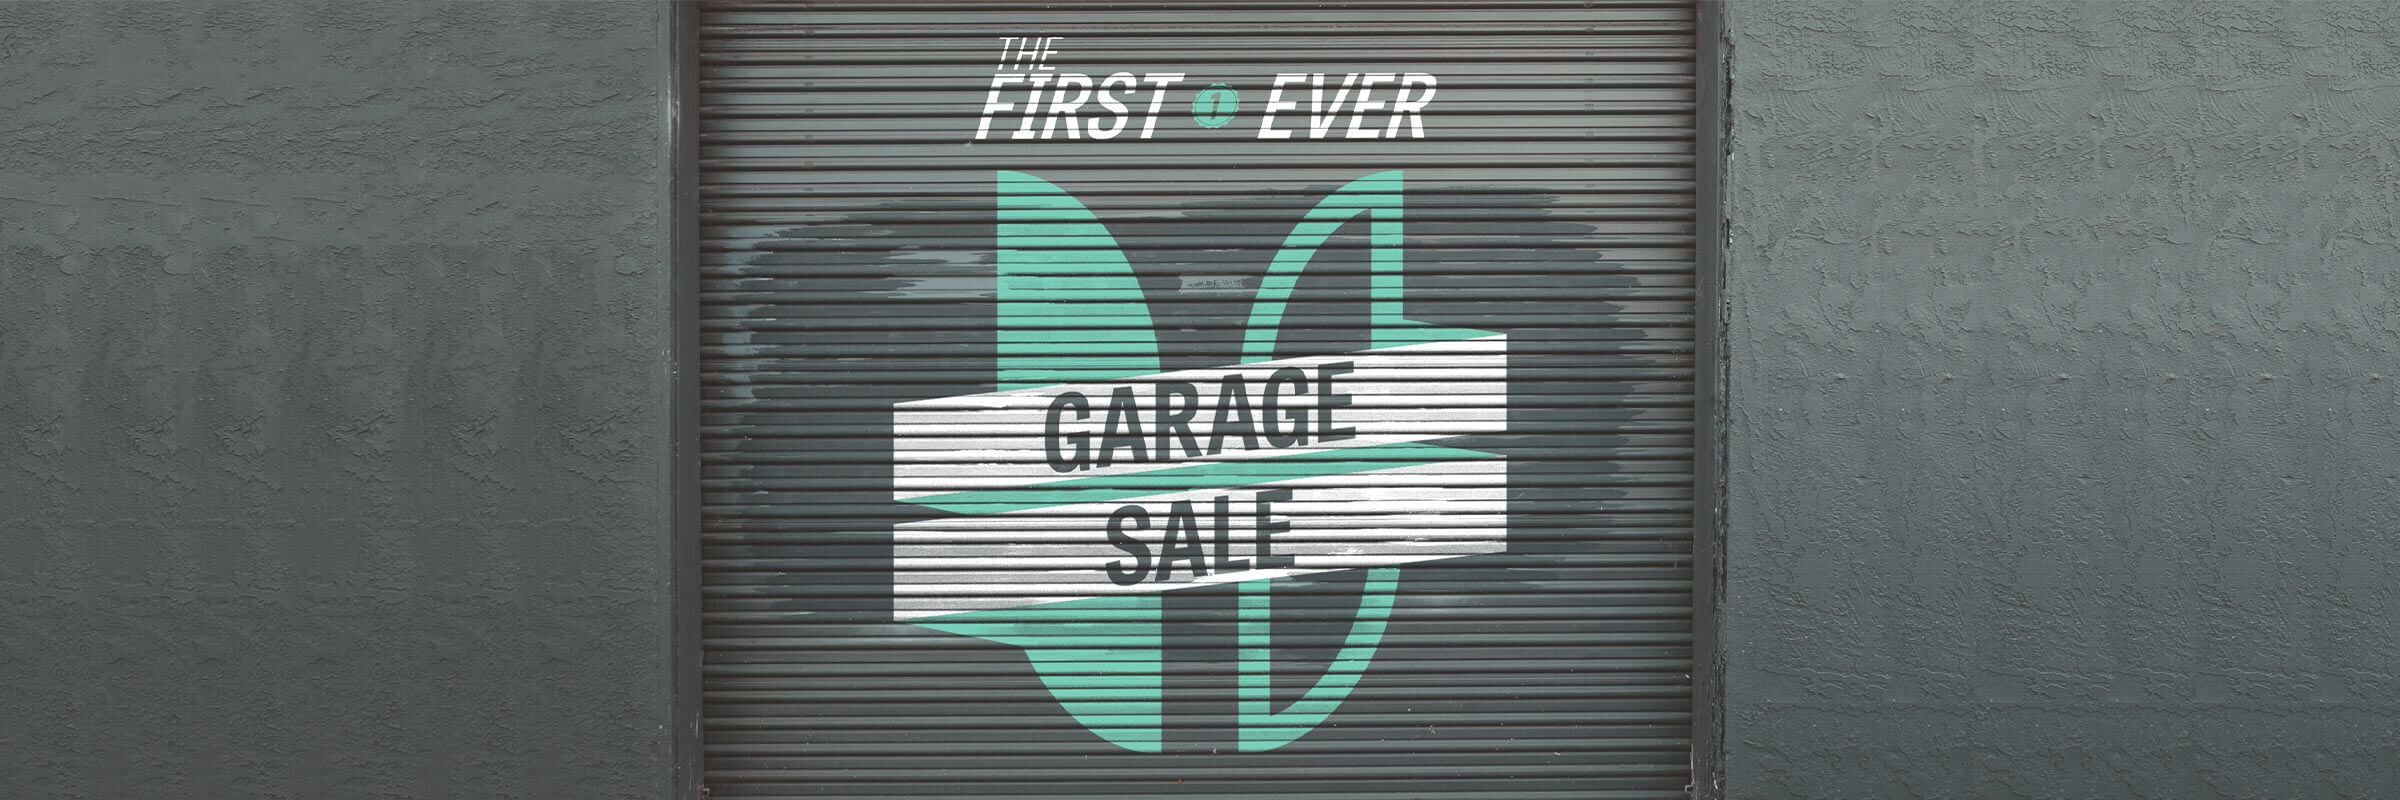 OUR FIRST EVER GARAGE SALE